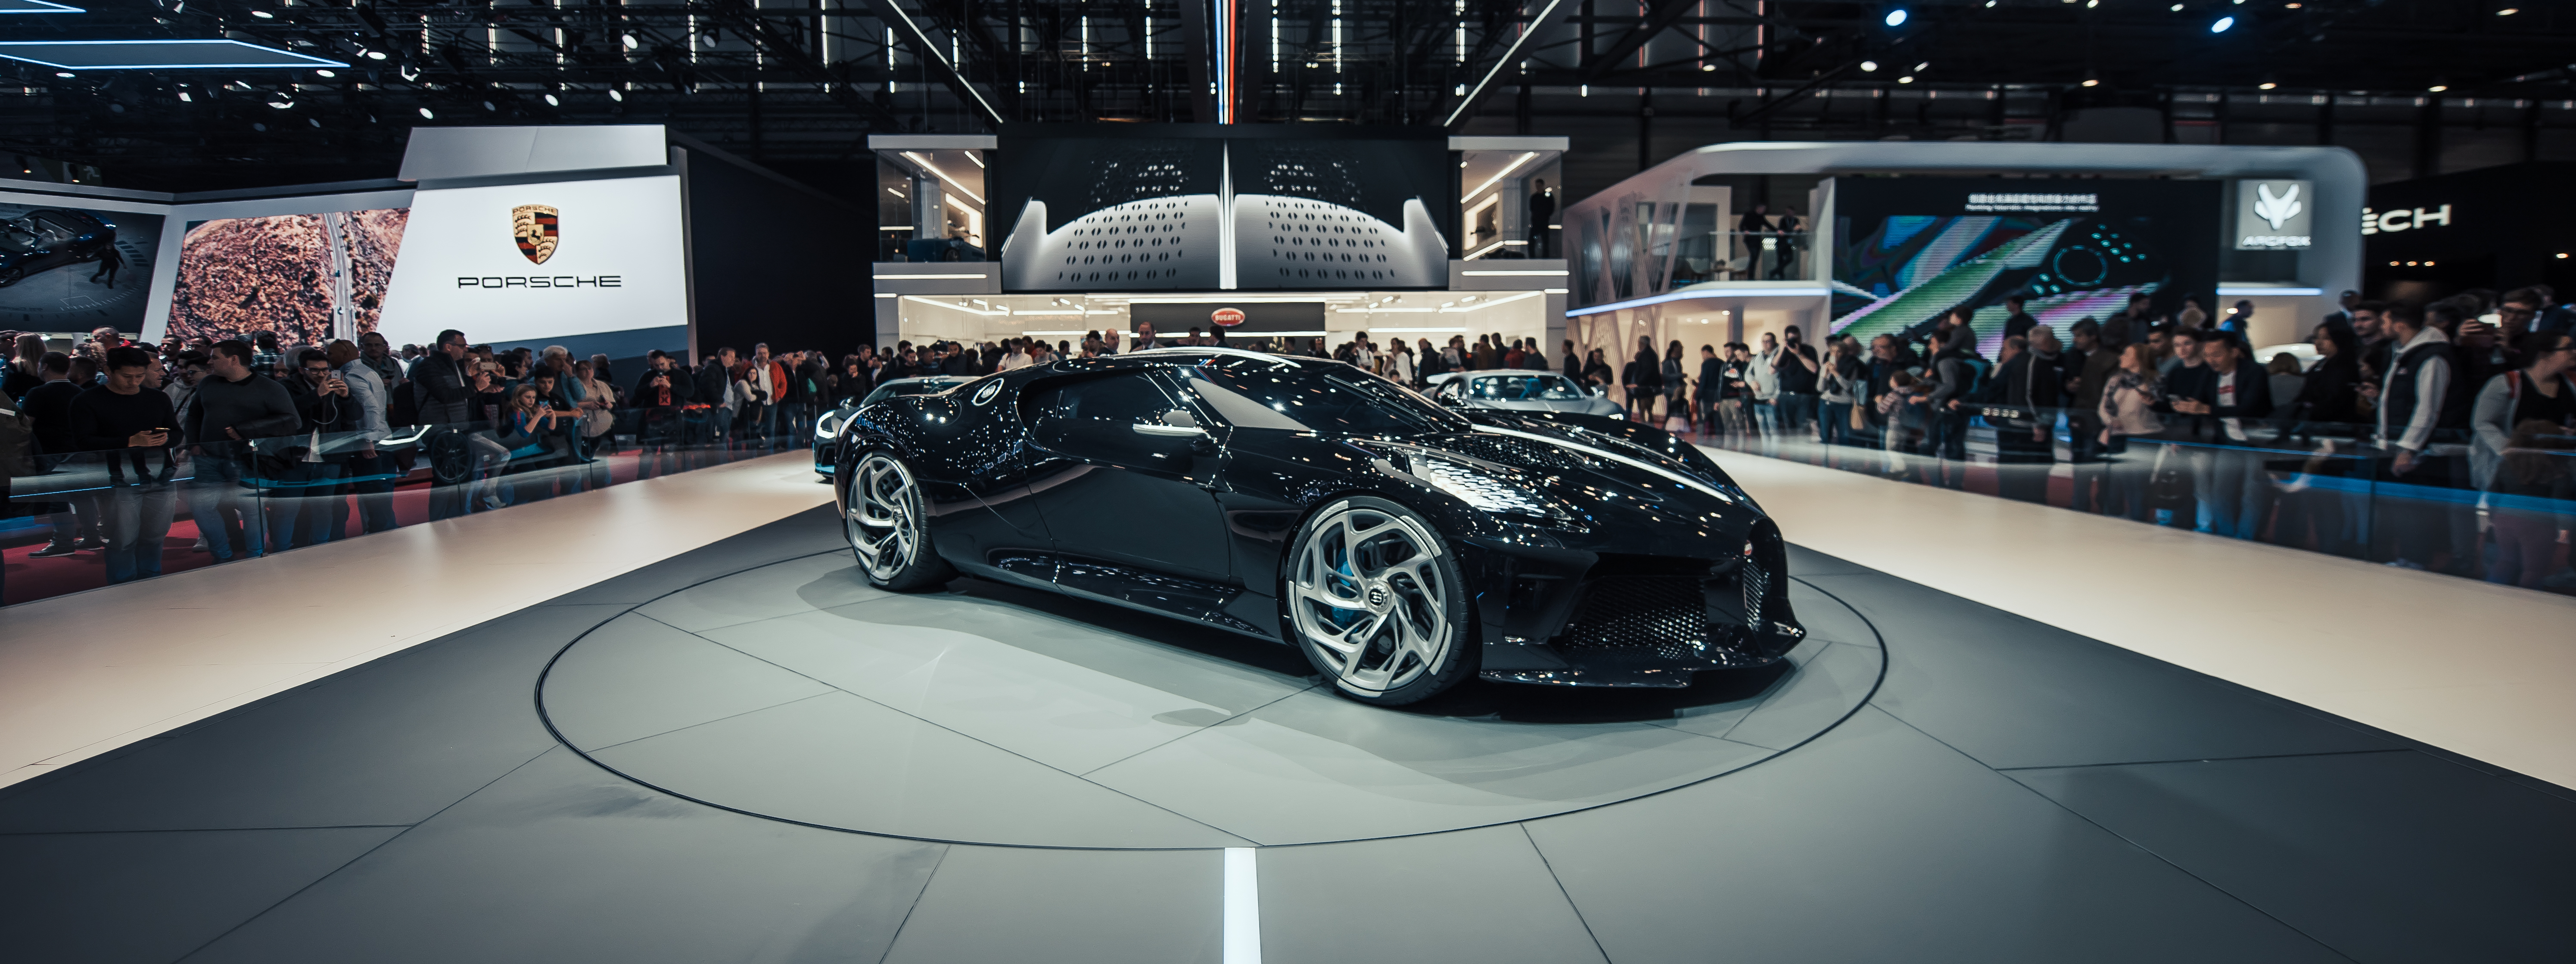 black Lamborghini on display surrounded with people watching